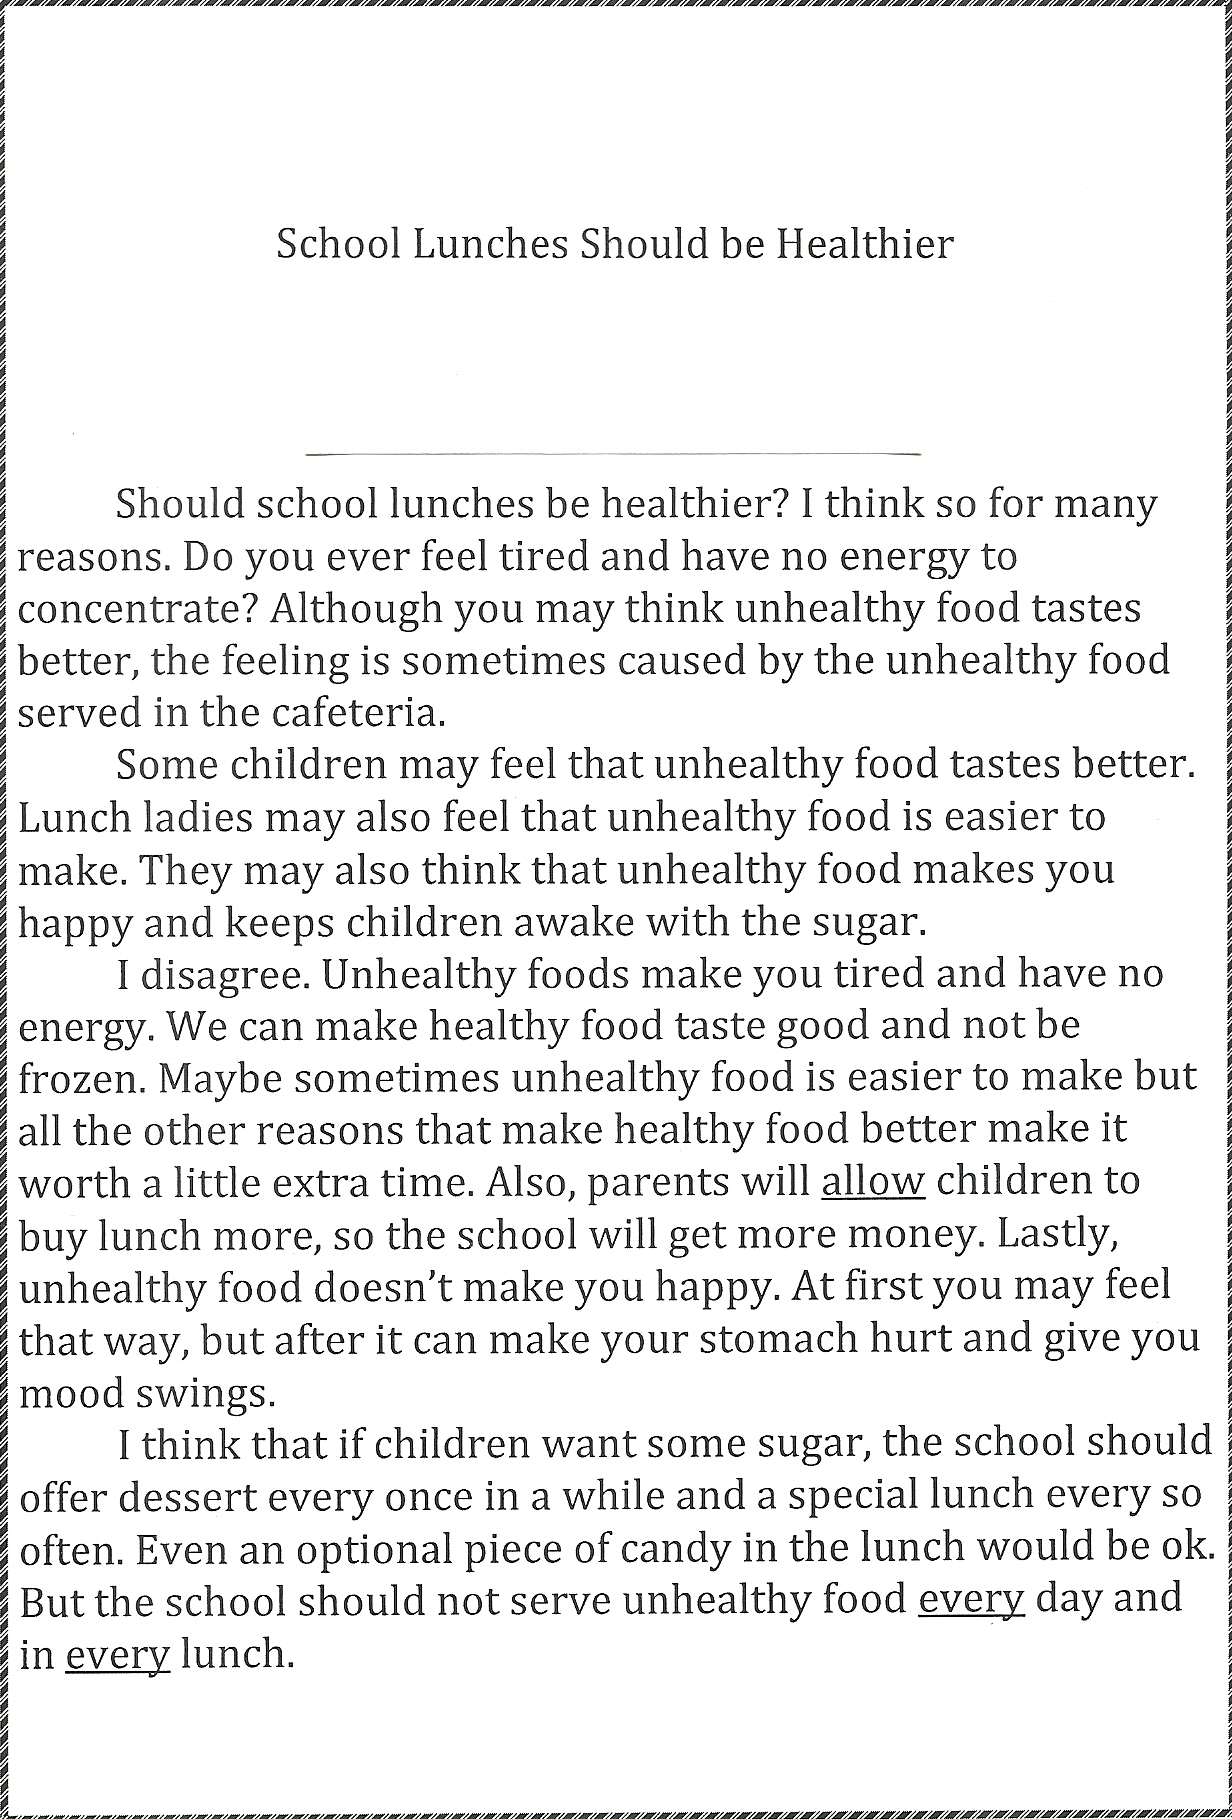 012 Persuasive Essayss Thoughtsonschoollunches Essay Stupendous Essays Examples For 5th Grade 11 High School Pdf Full